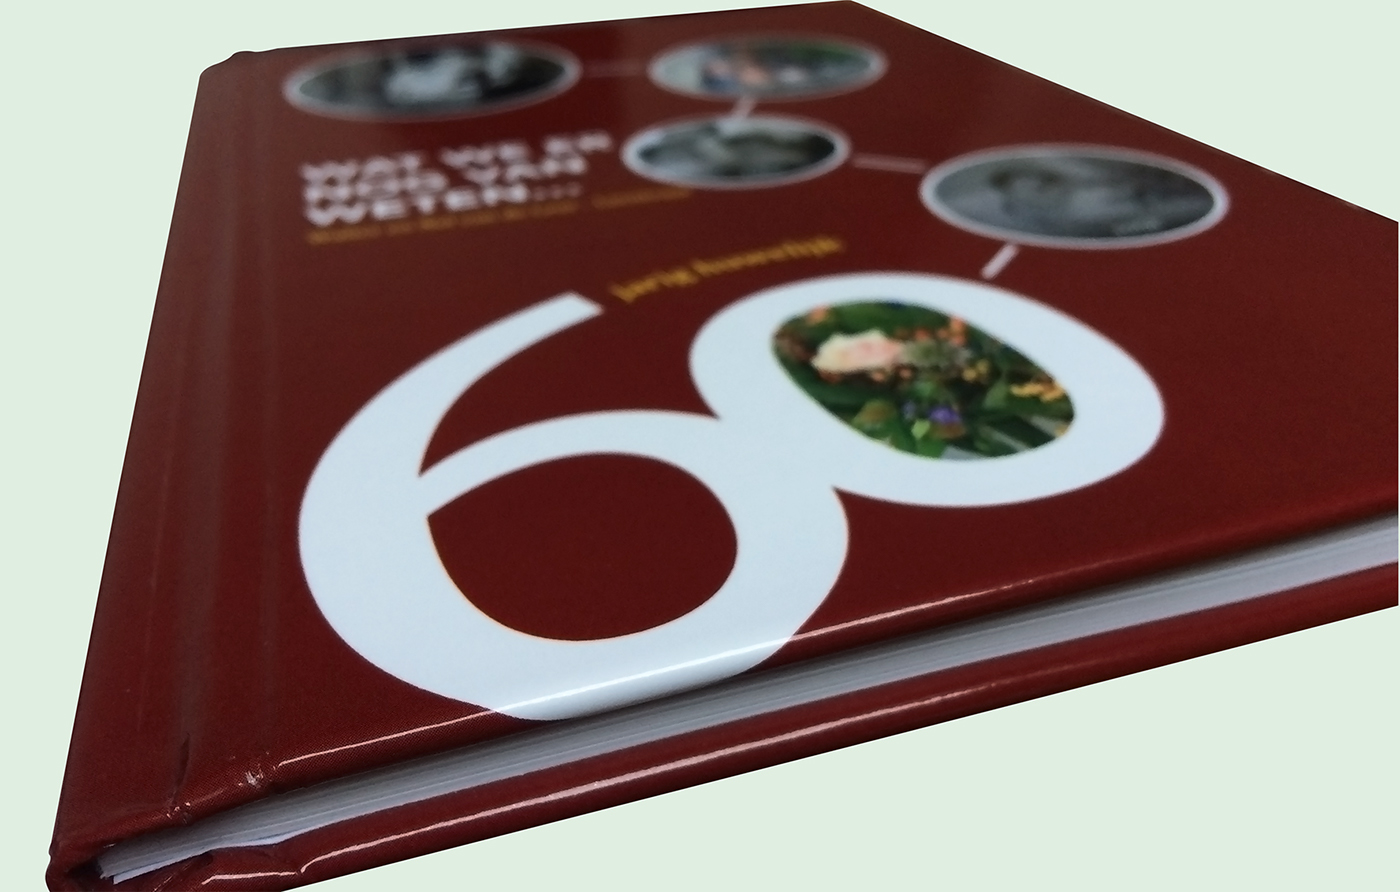 book InDesign photoshop graphic design Story Book print